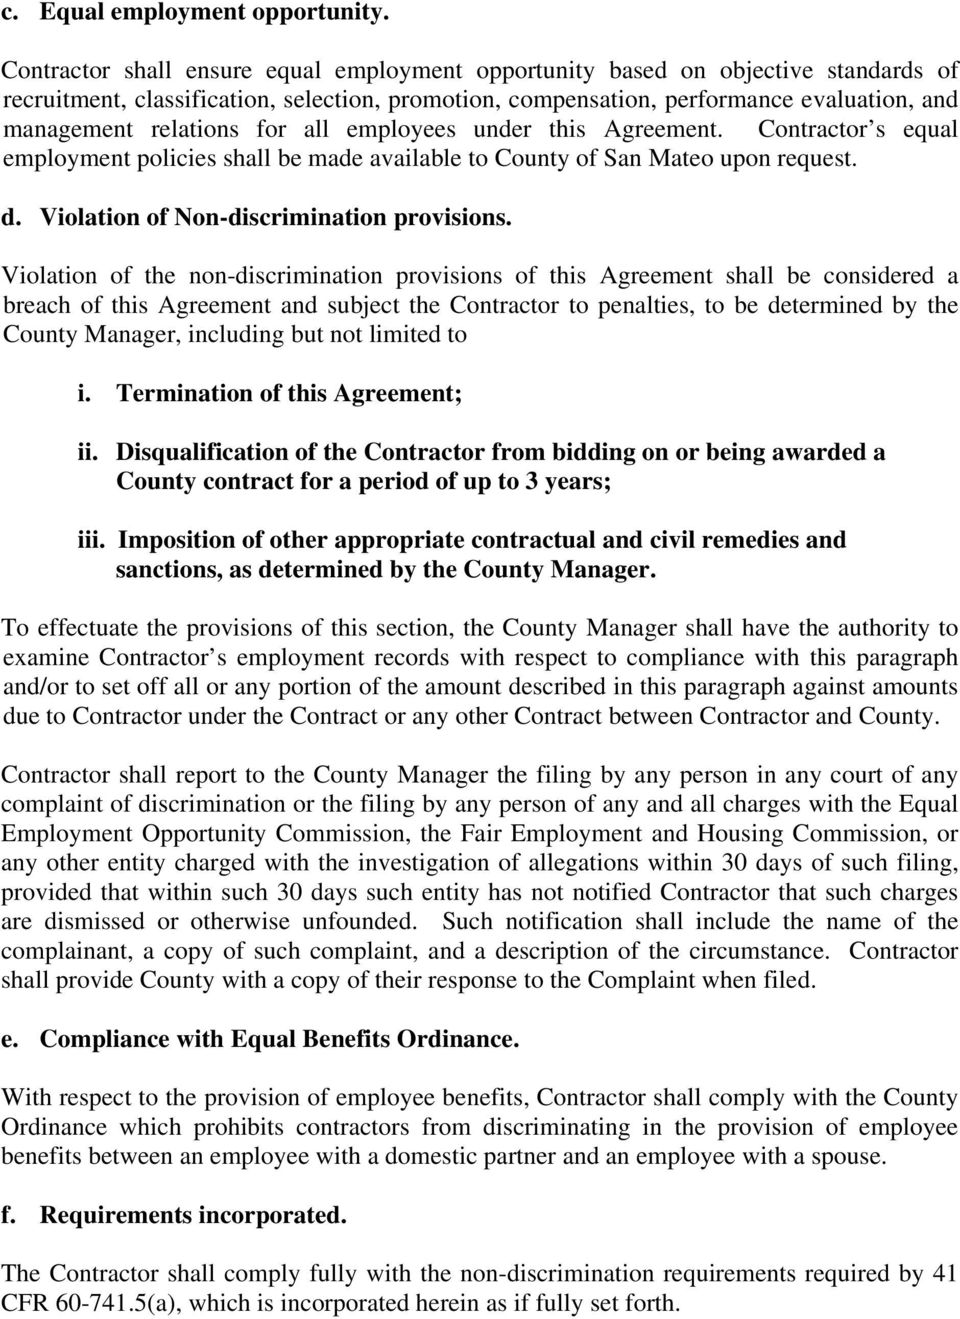 for all employees under this Agreement. Contractor s equal employment policies shall be made available to County of San Mateo upon request. d. Violation of Non-discrimination provisions.